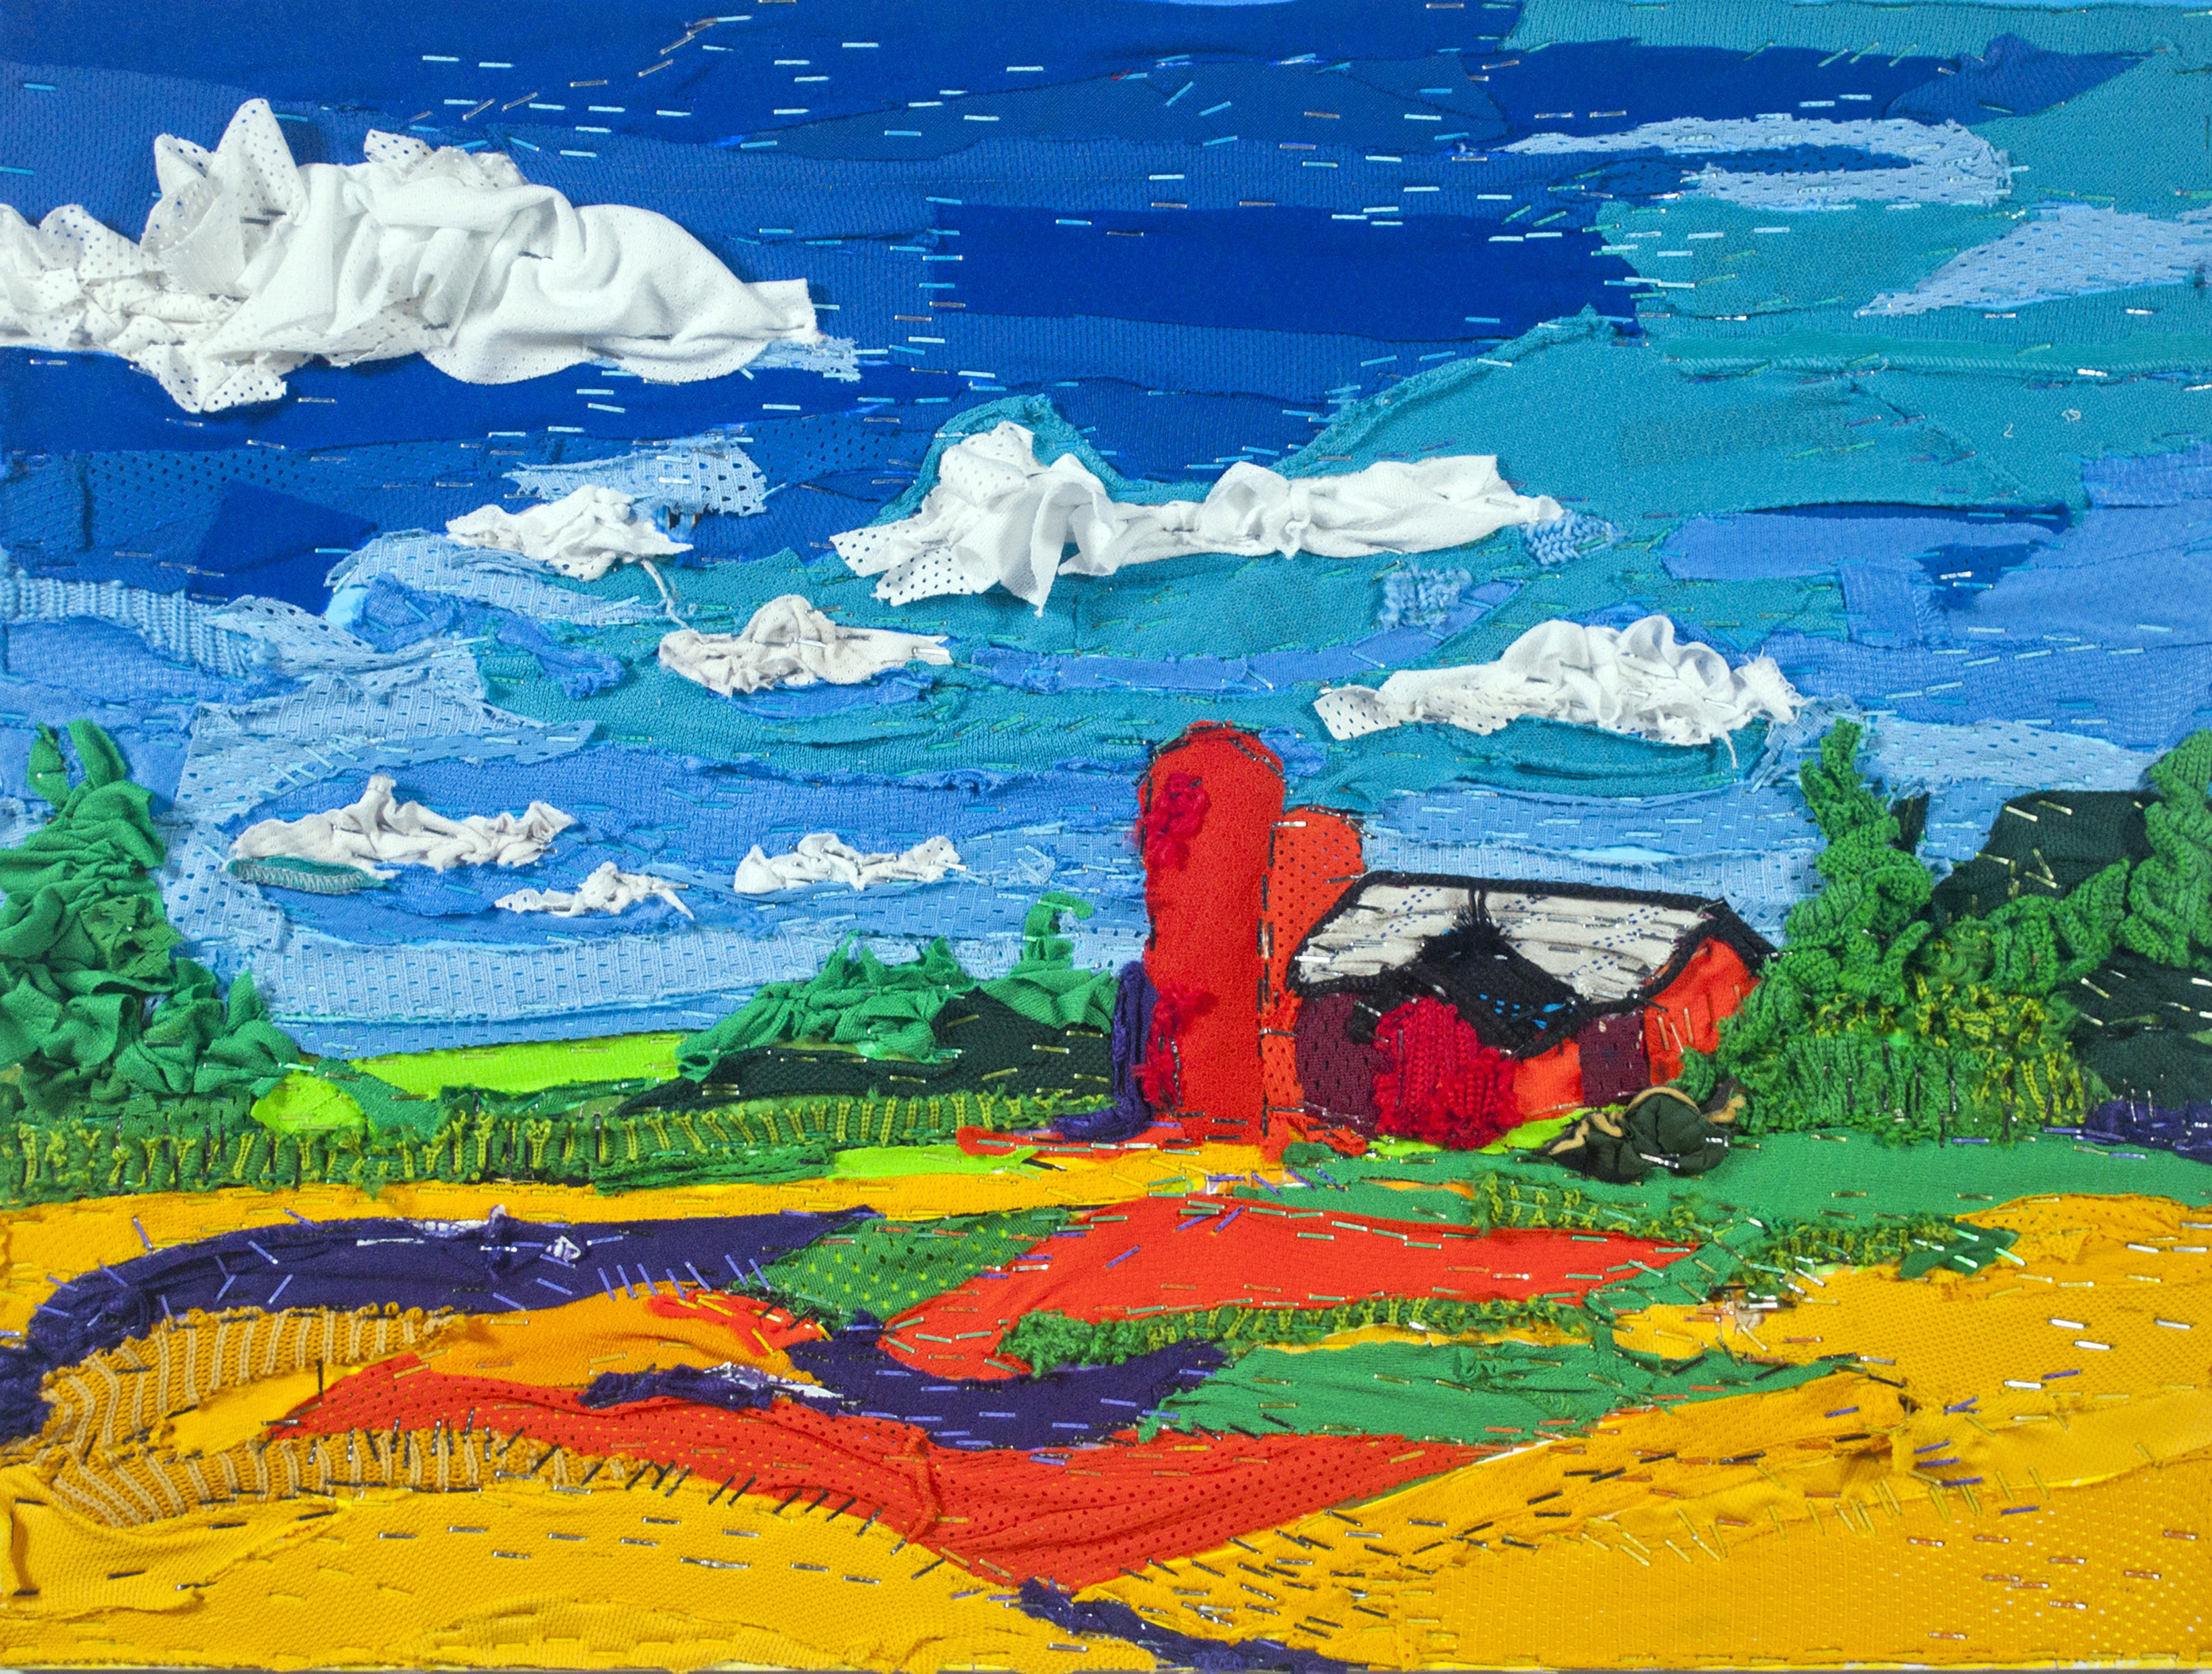 This is a collaged landscape made up of recycled hockey equipment depicting a blue sky with white clouds, trees in full bloom, and red farm sitting on a field of orange, red, and blue hockey jersey fabric. All fabric is stapled to the surface